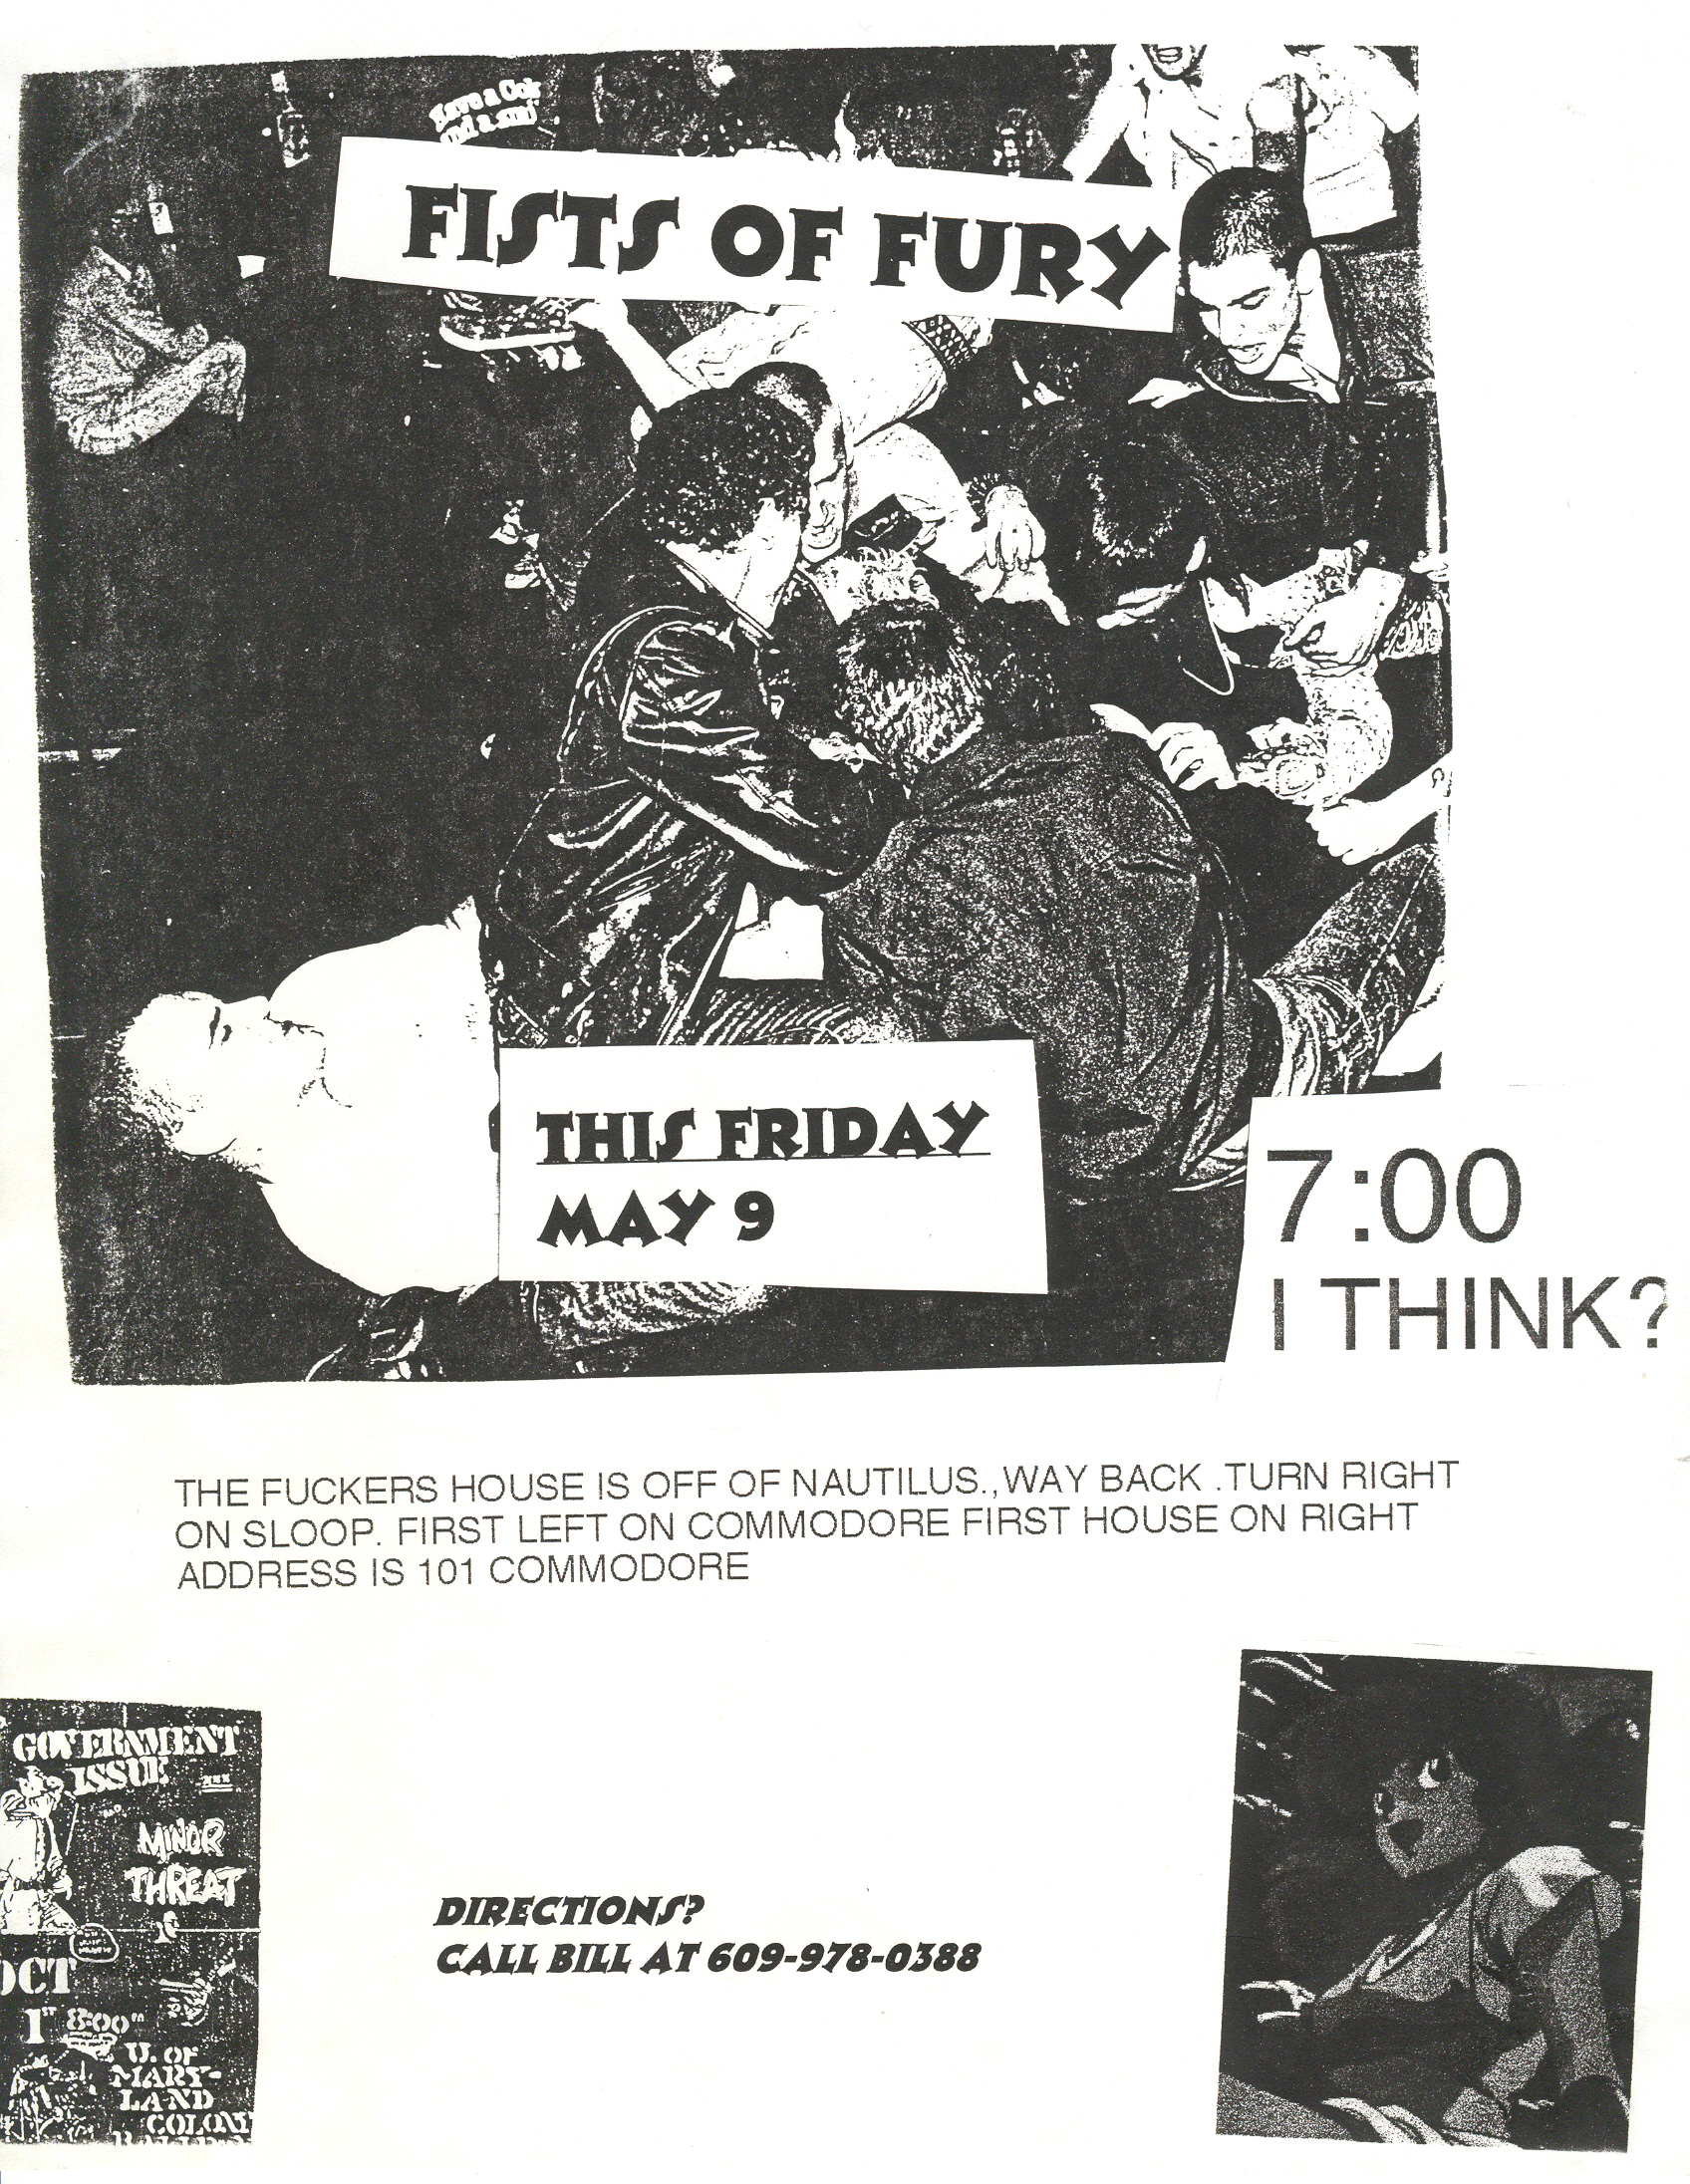 Fists Of Fury @ House Show Manahawkin NJ 5-9-97